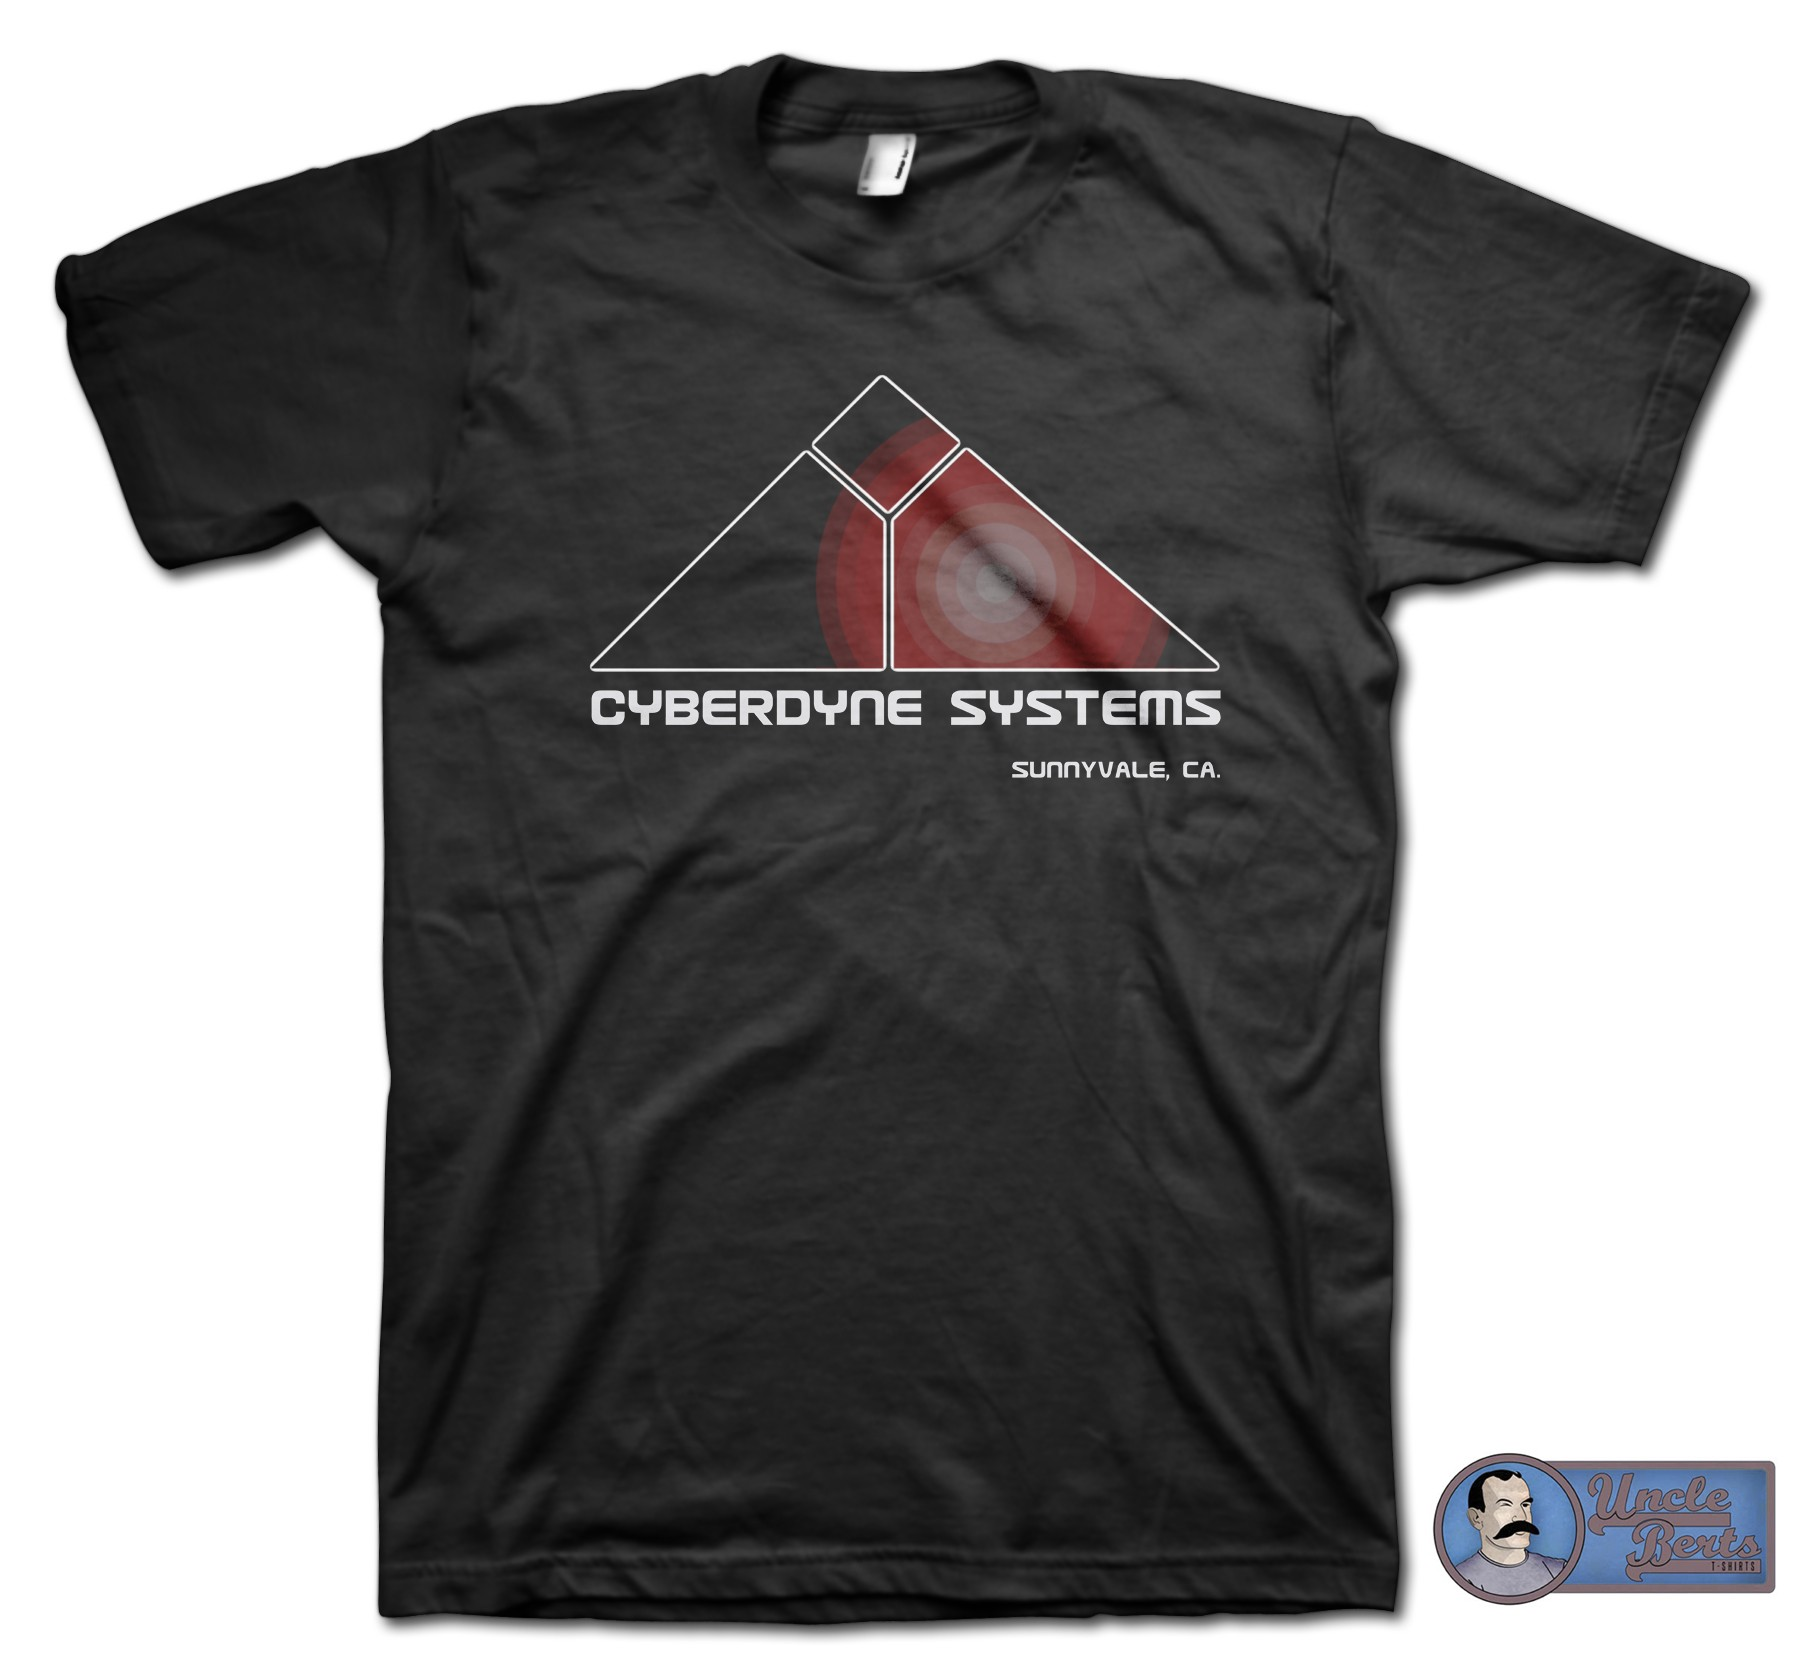 Terminator 2 : Judgement Day (1991) inspired Cyberdyne Systems T-Shirt